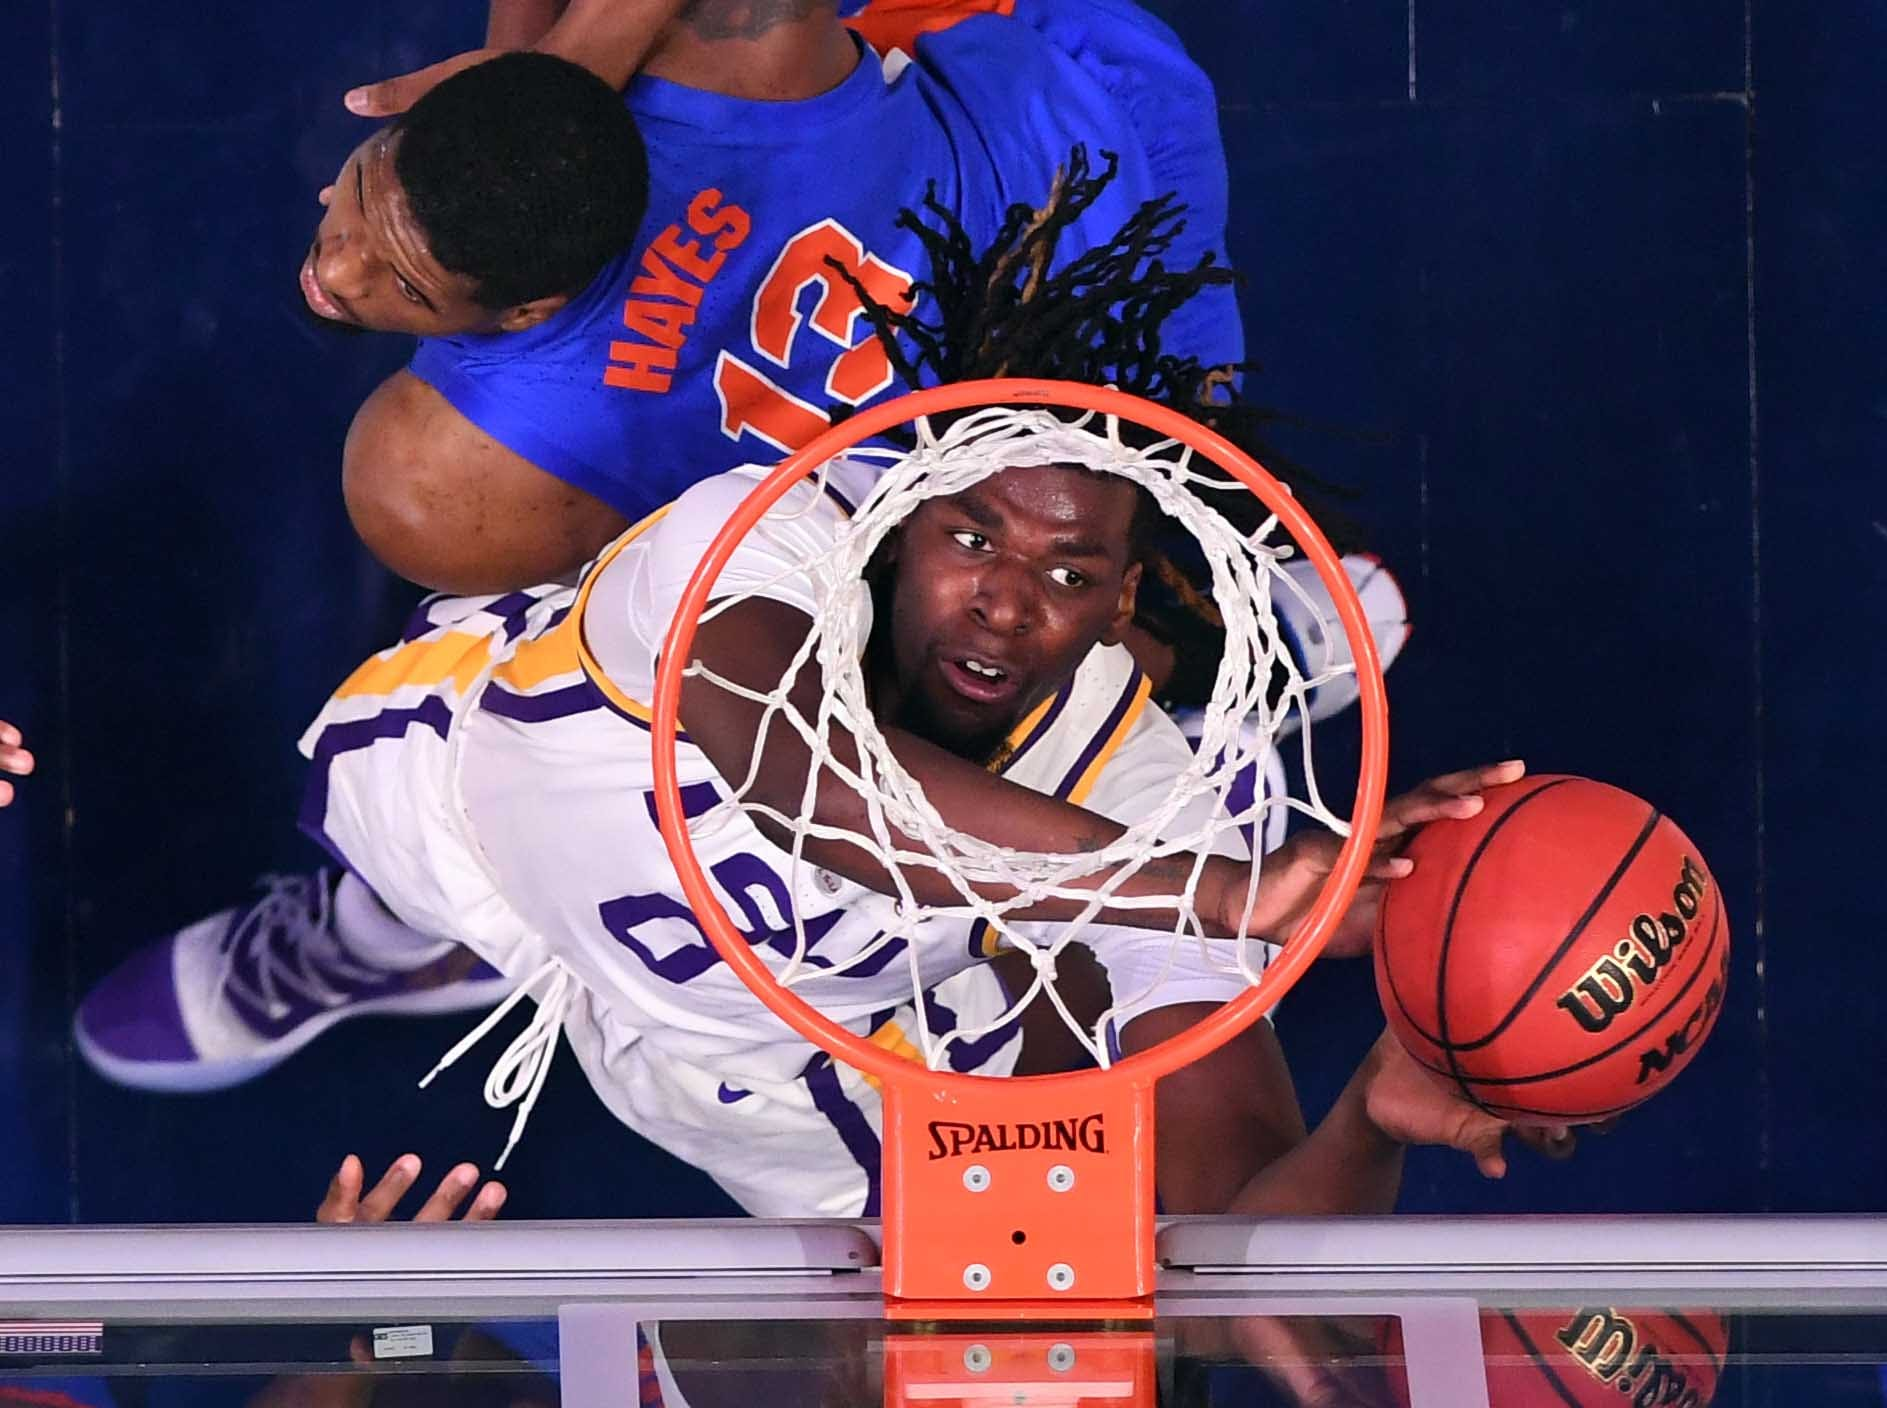 March 15: LSU Tigers forward Naz Reid (0) puts in a rebound behind pressure from Florida Gators center Kevarrius Hayes (13) in the SEC tournament.